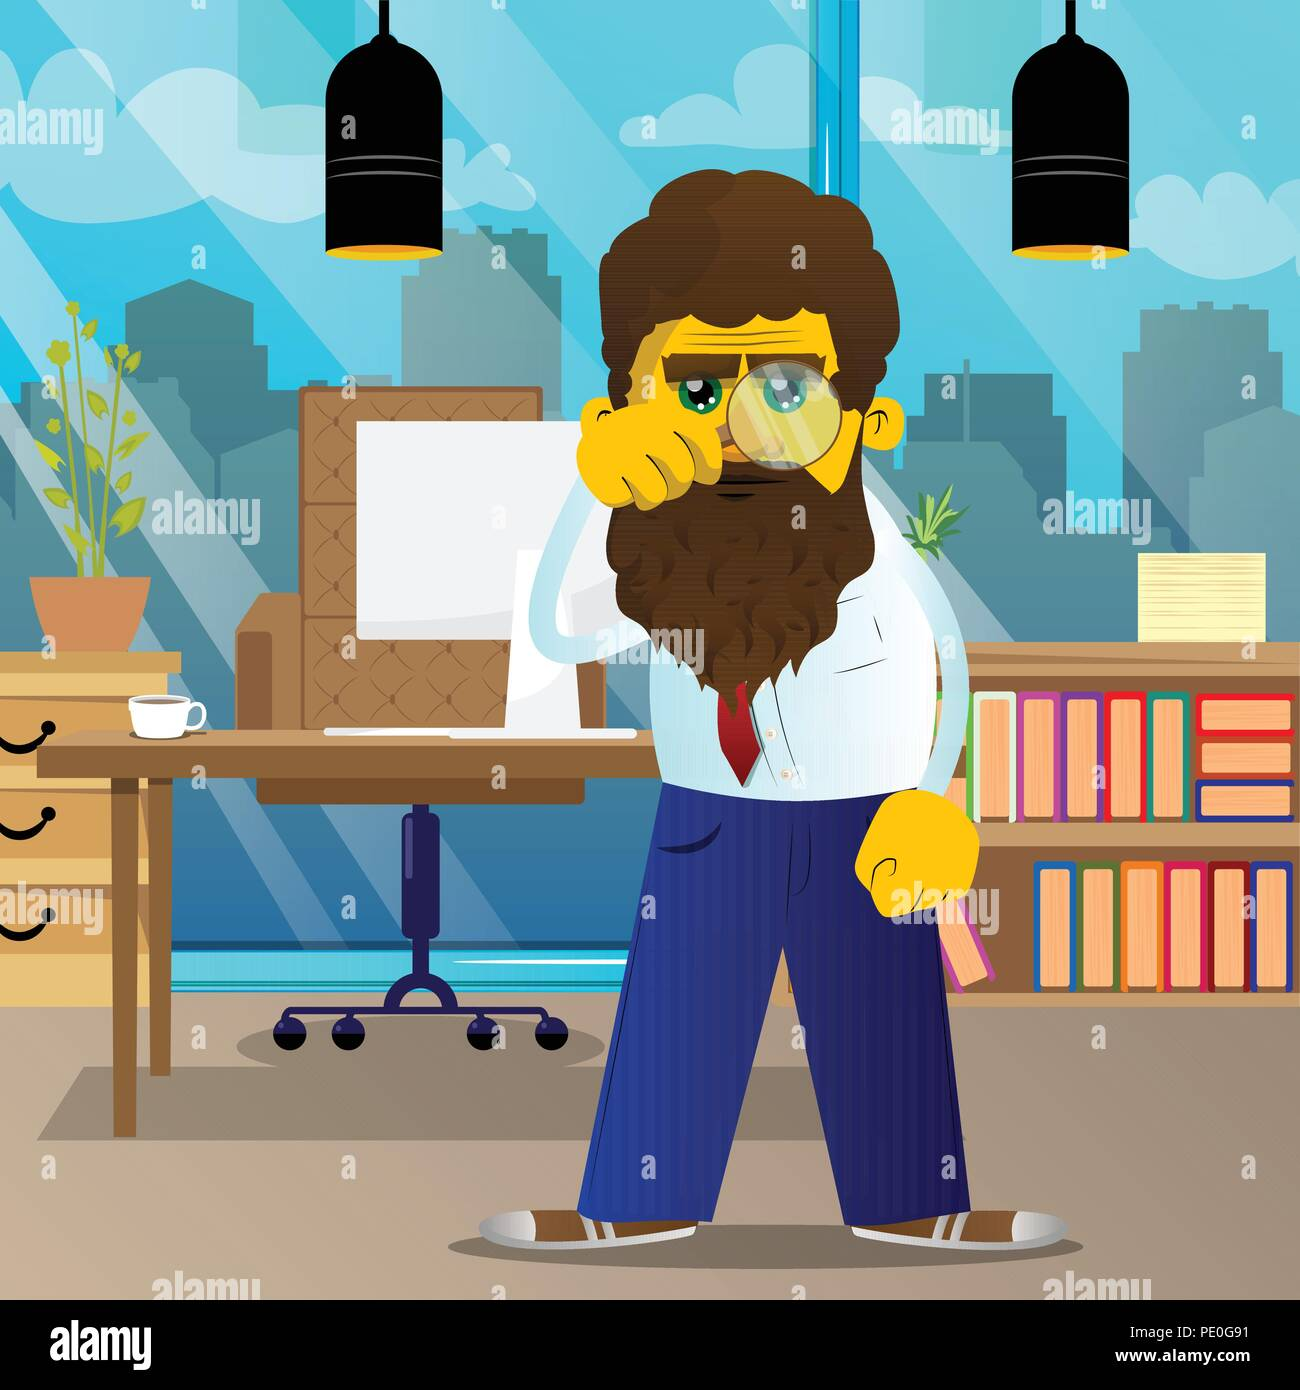 Yellow man holding a magnifying glass. Vector cartoon illustration. - Stock Image